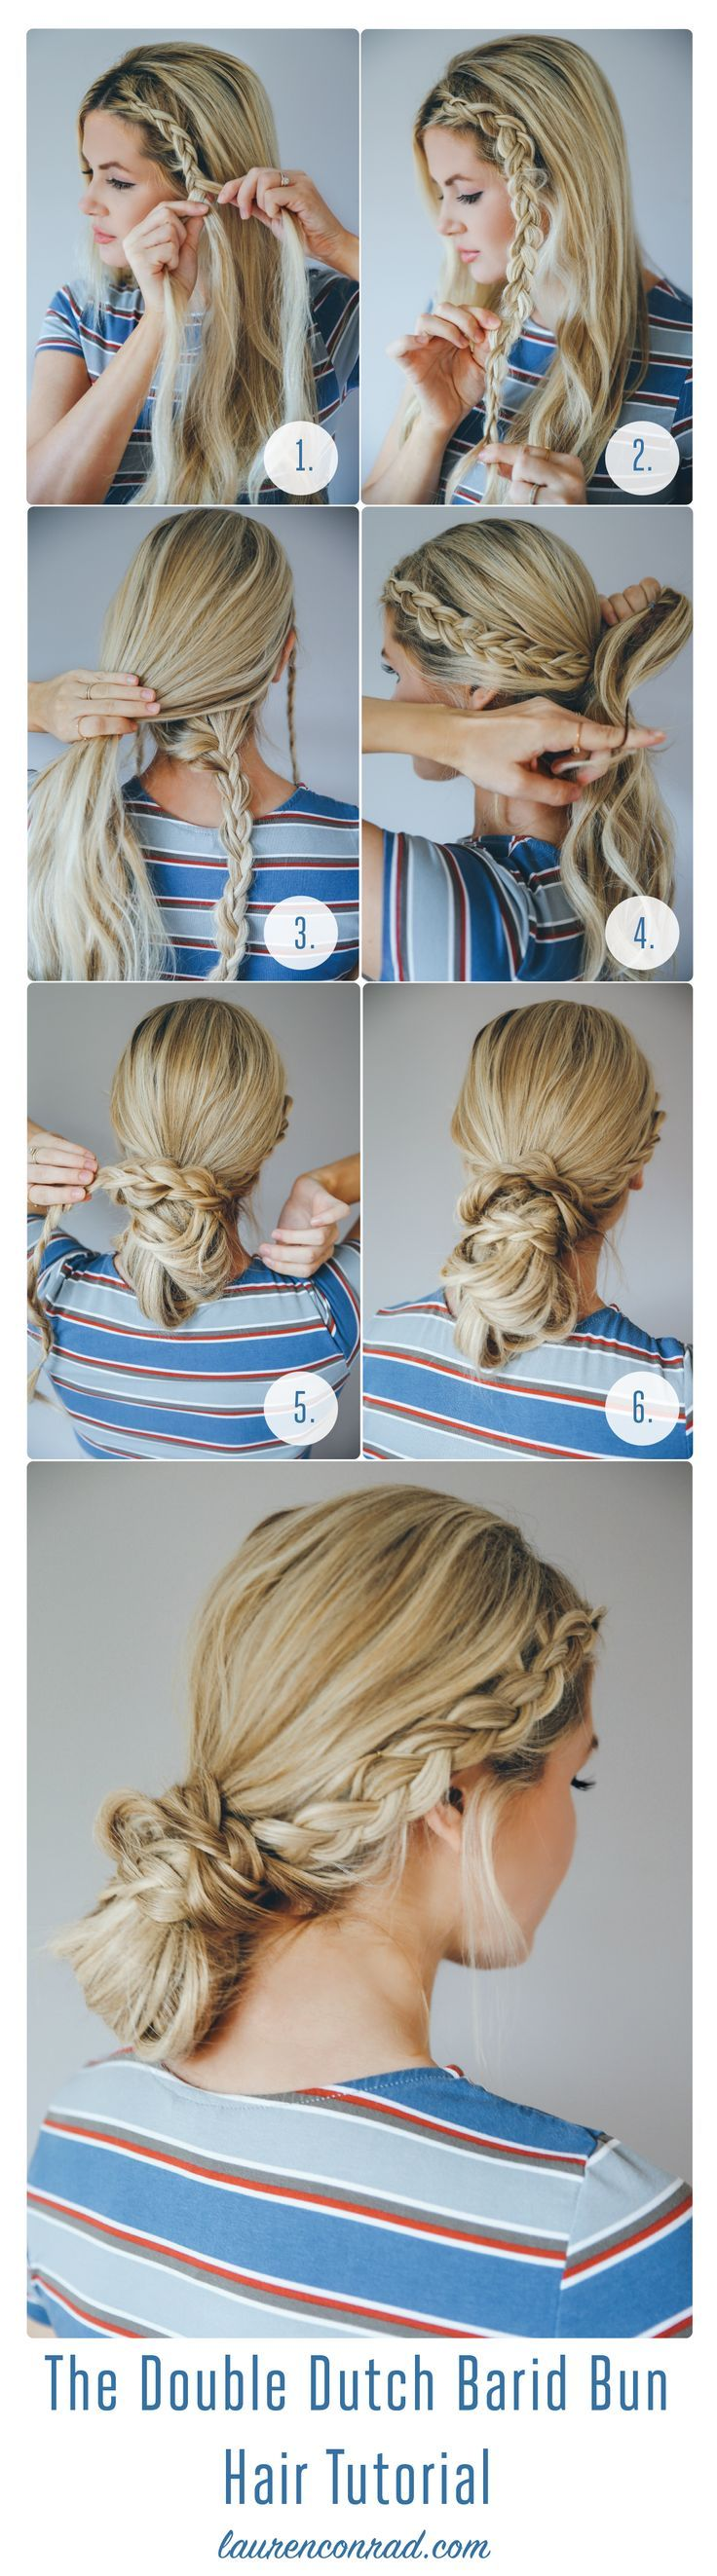 Pin by nisha saifi on hairstyle pinterest hair hair styles and